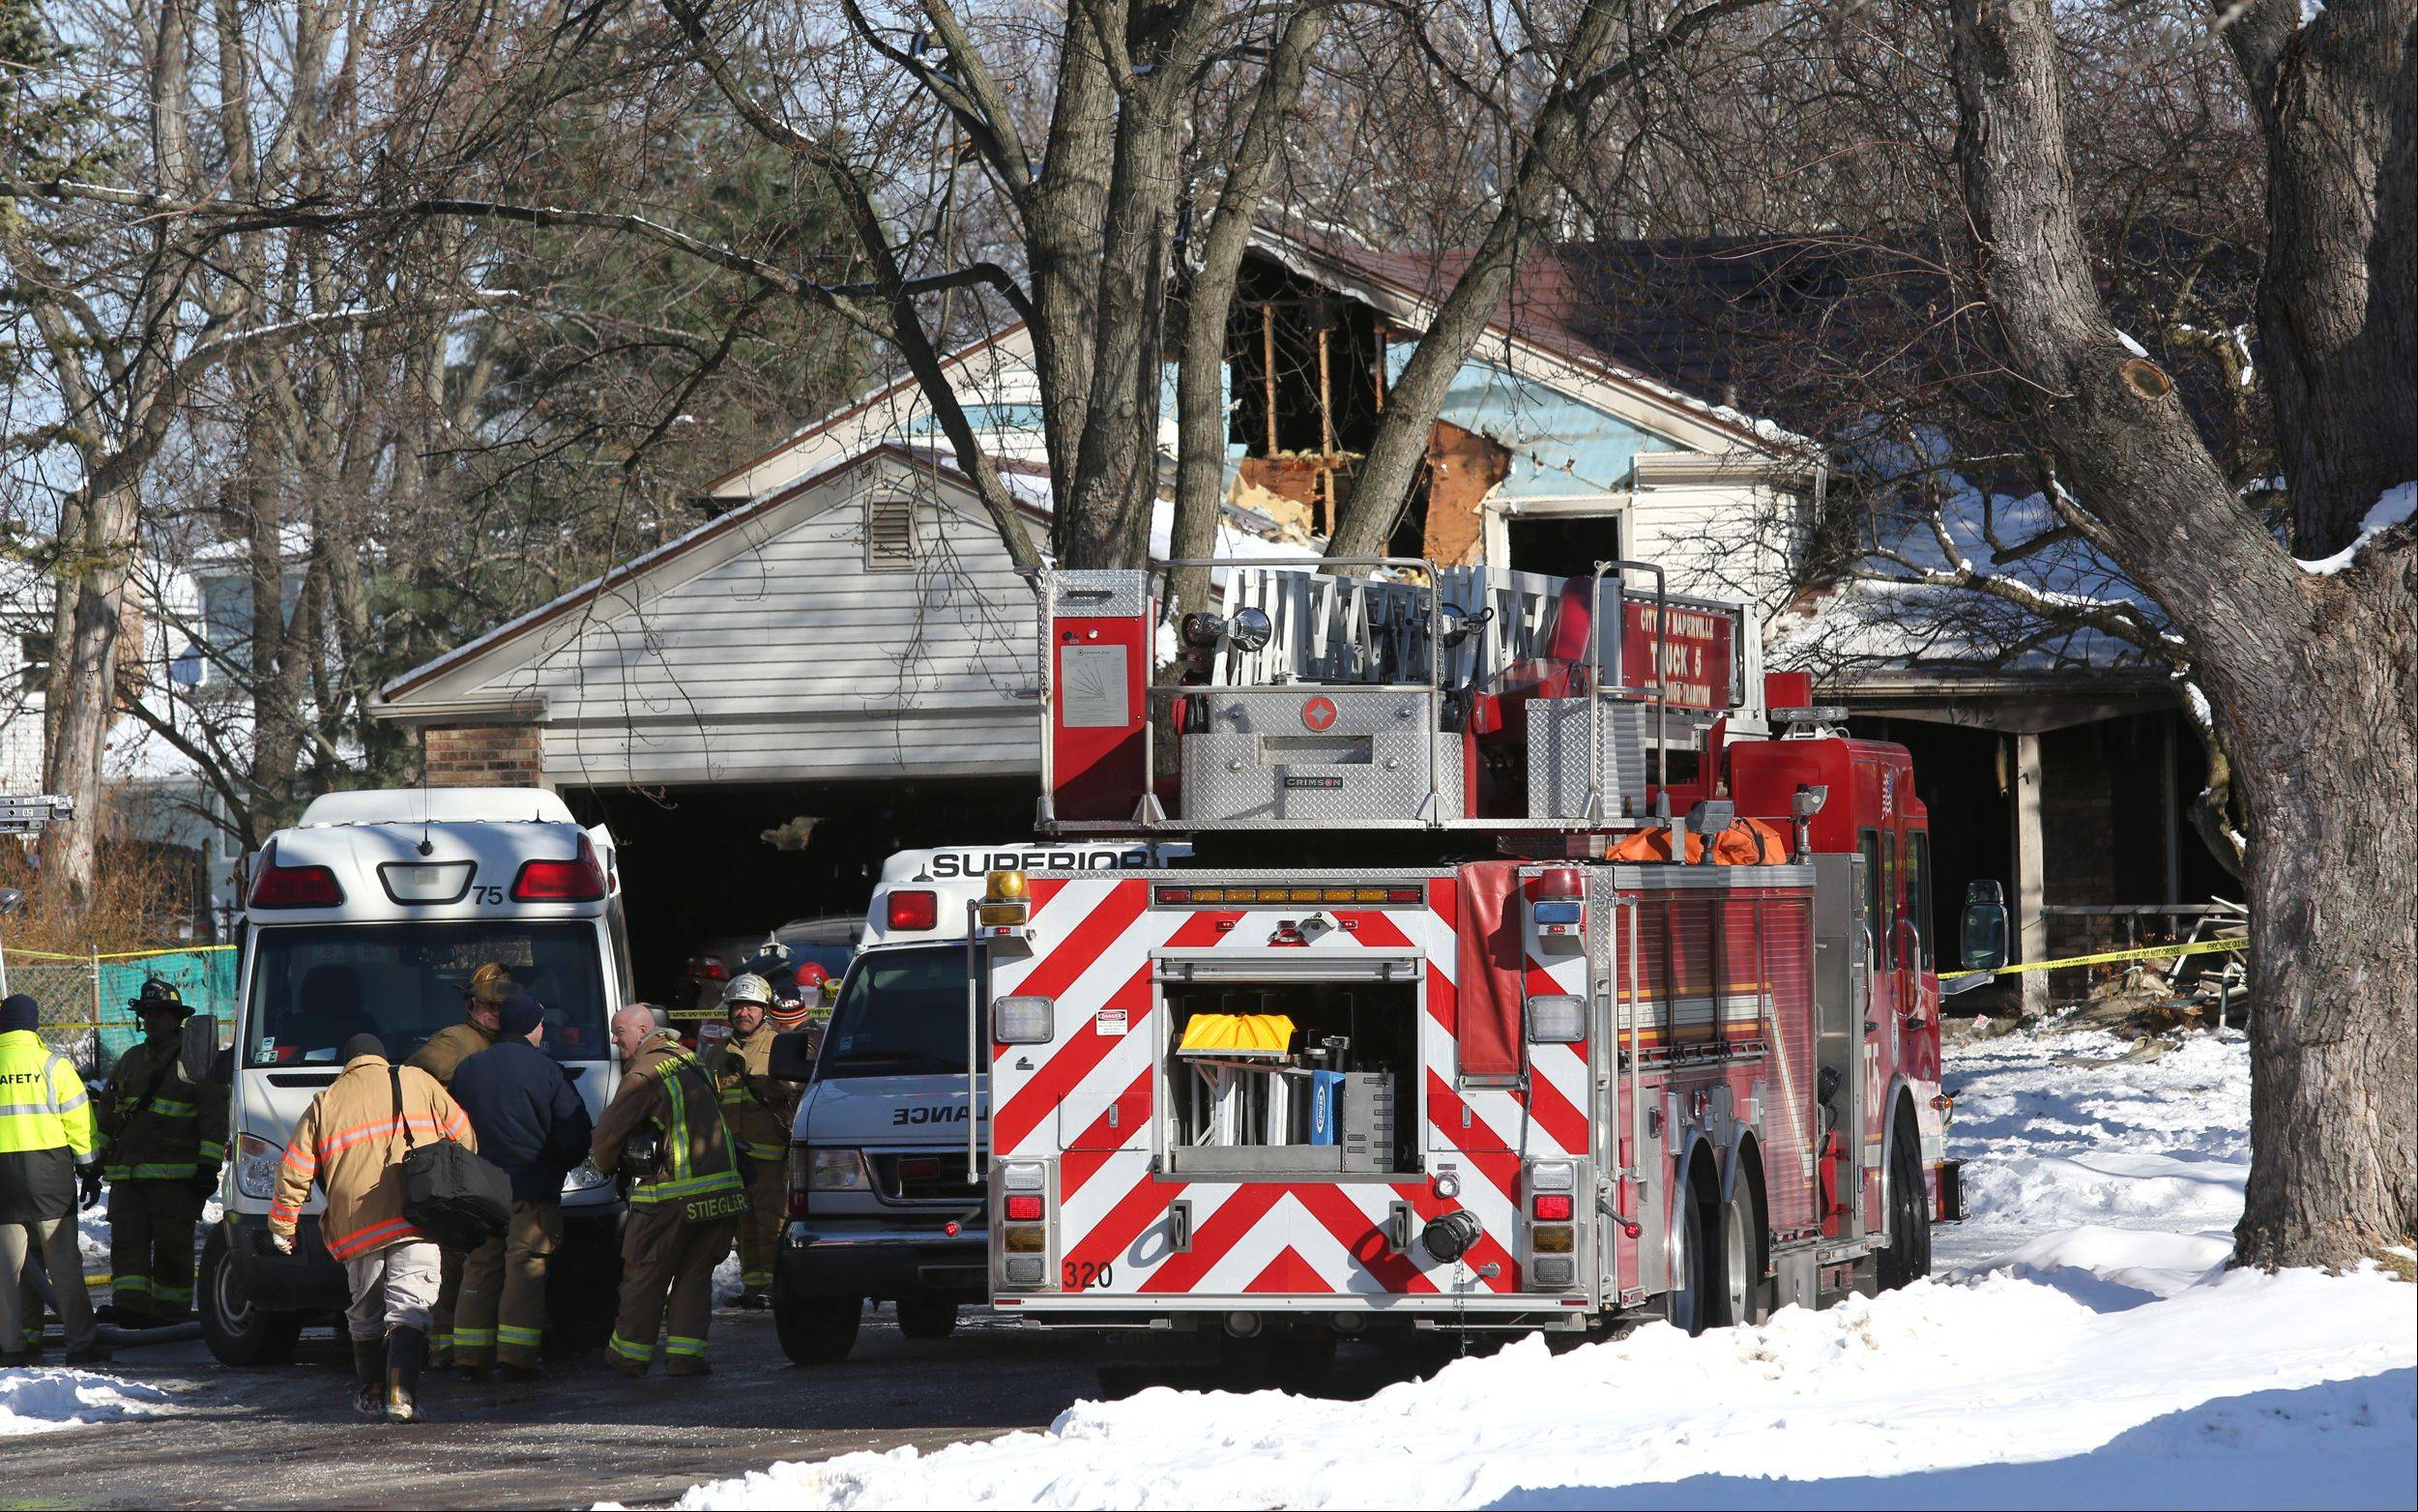 Ambulances prepare to remove the bodies of two people killed in a morning house fire Wednesday on the 1200 block of Field Court in Naperville.